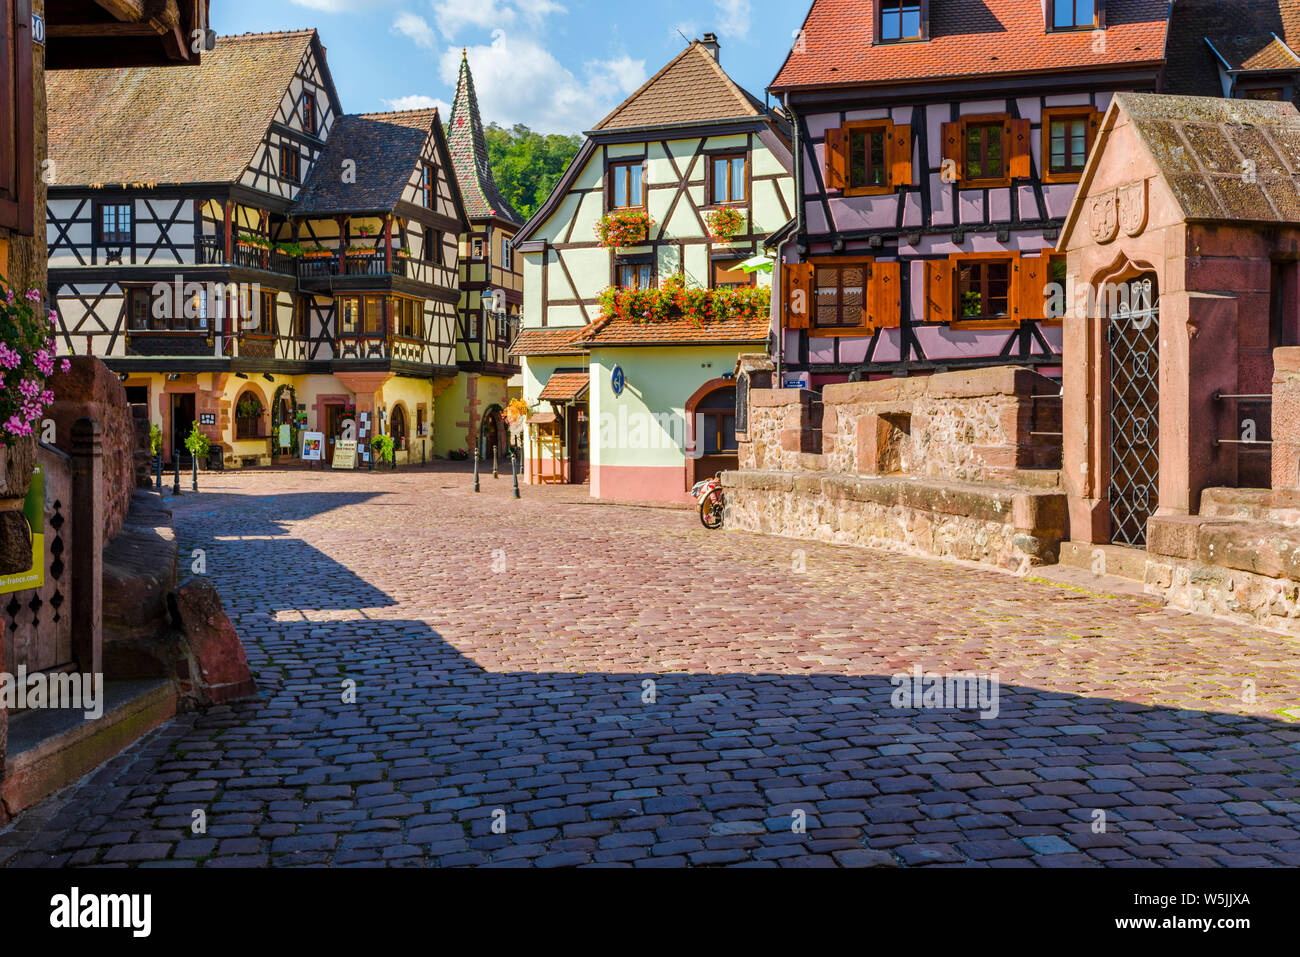 scenic old town in the historical center of Kaysersberg, Alsace, France, old town with colorful half-timbered houses and stone bridge Stock Photo